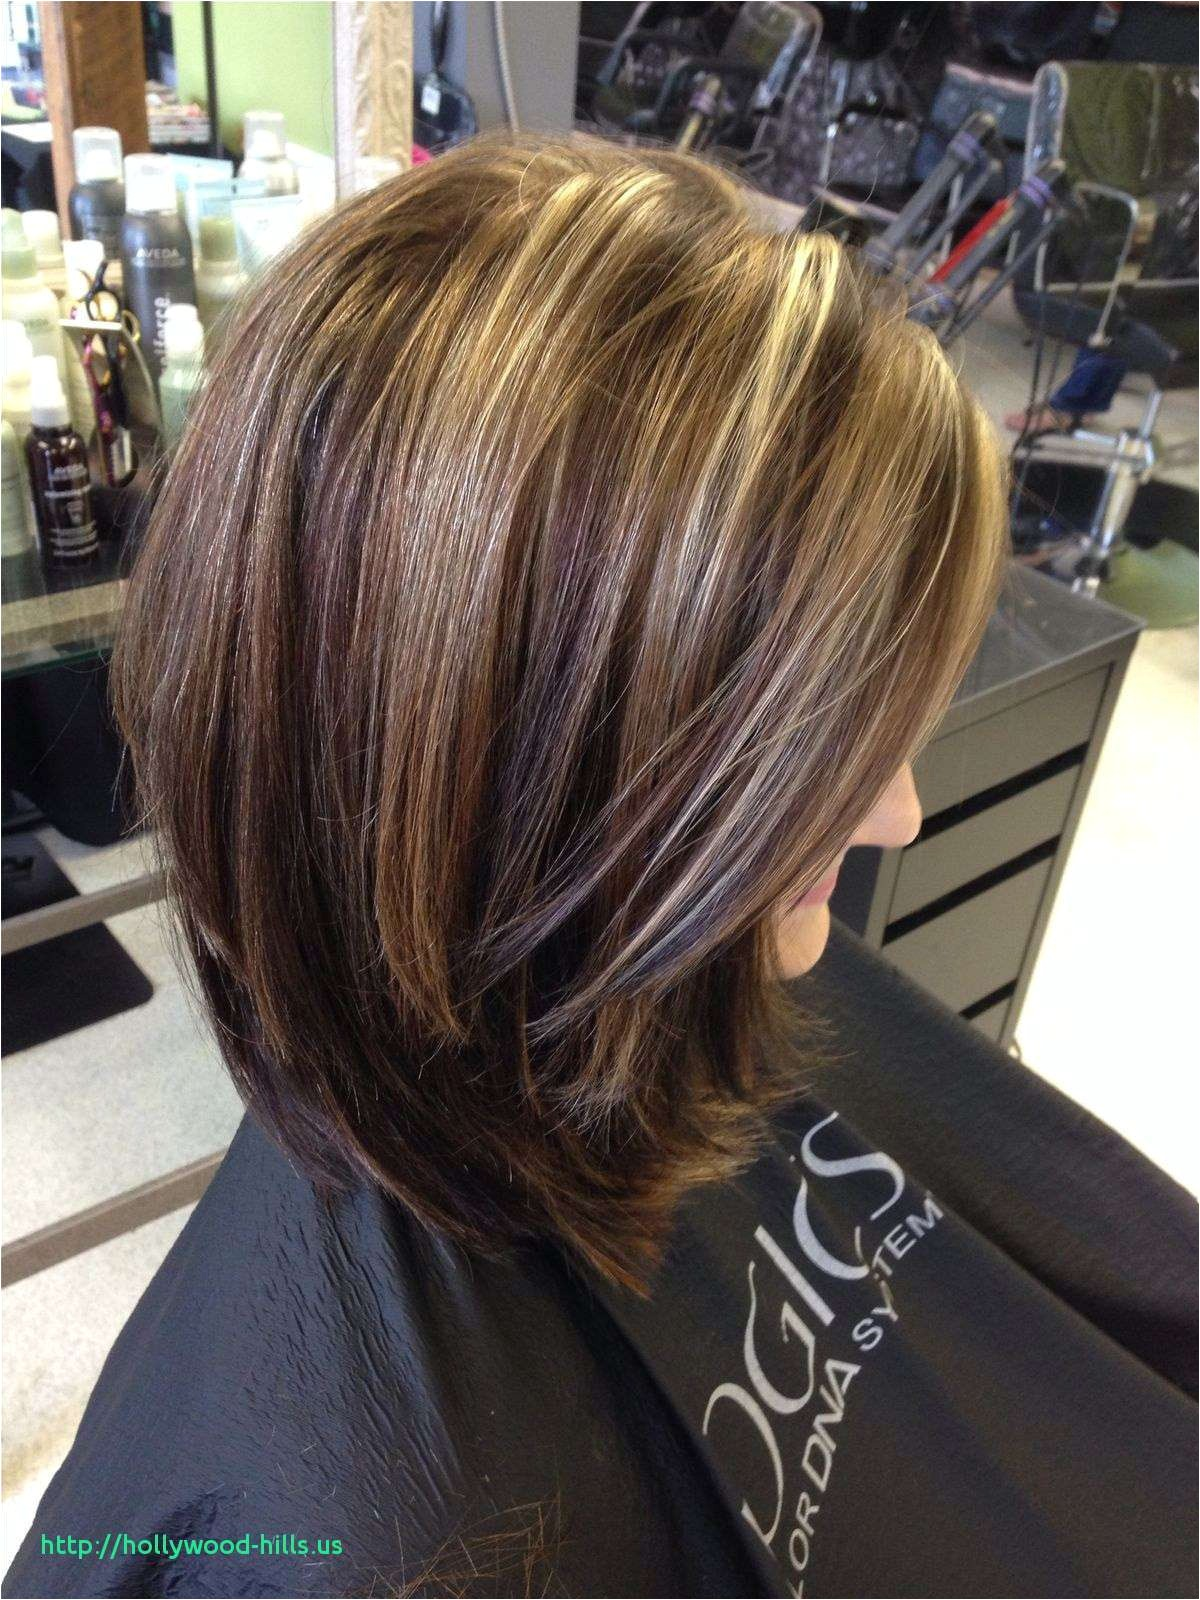 Bobs Hairstyle New Bob Hairstyles Gorgeous I Pinimg 1200x 0d 60 8a